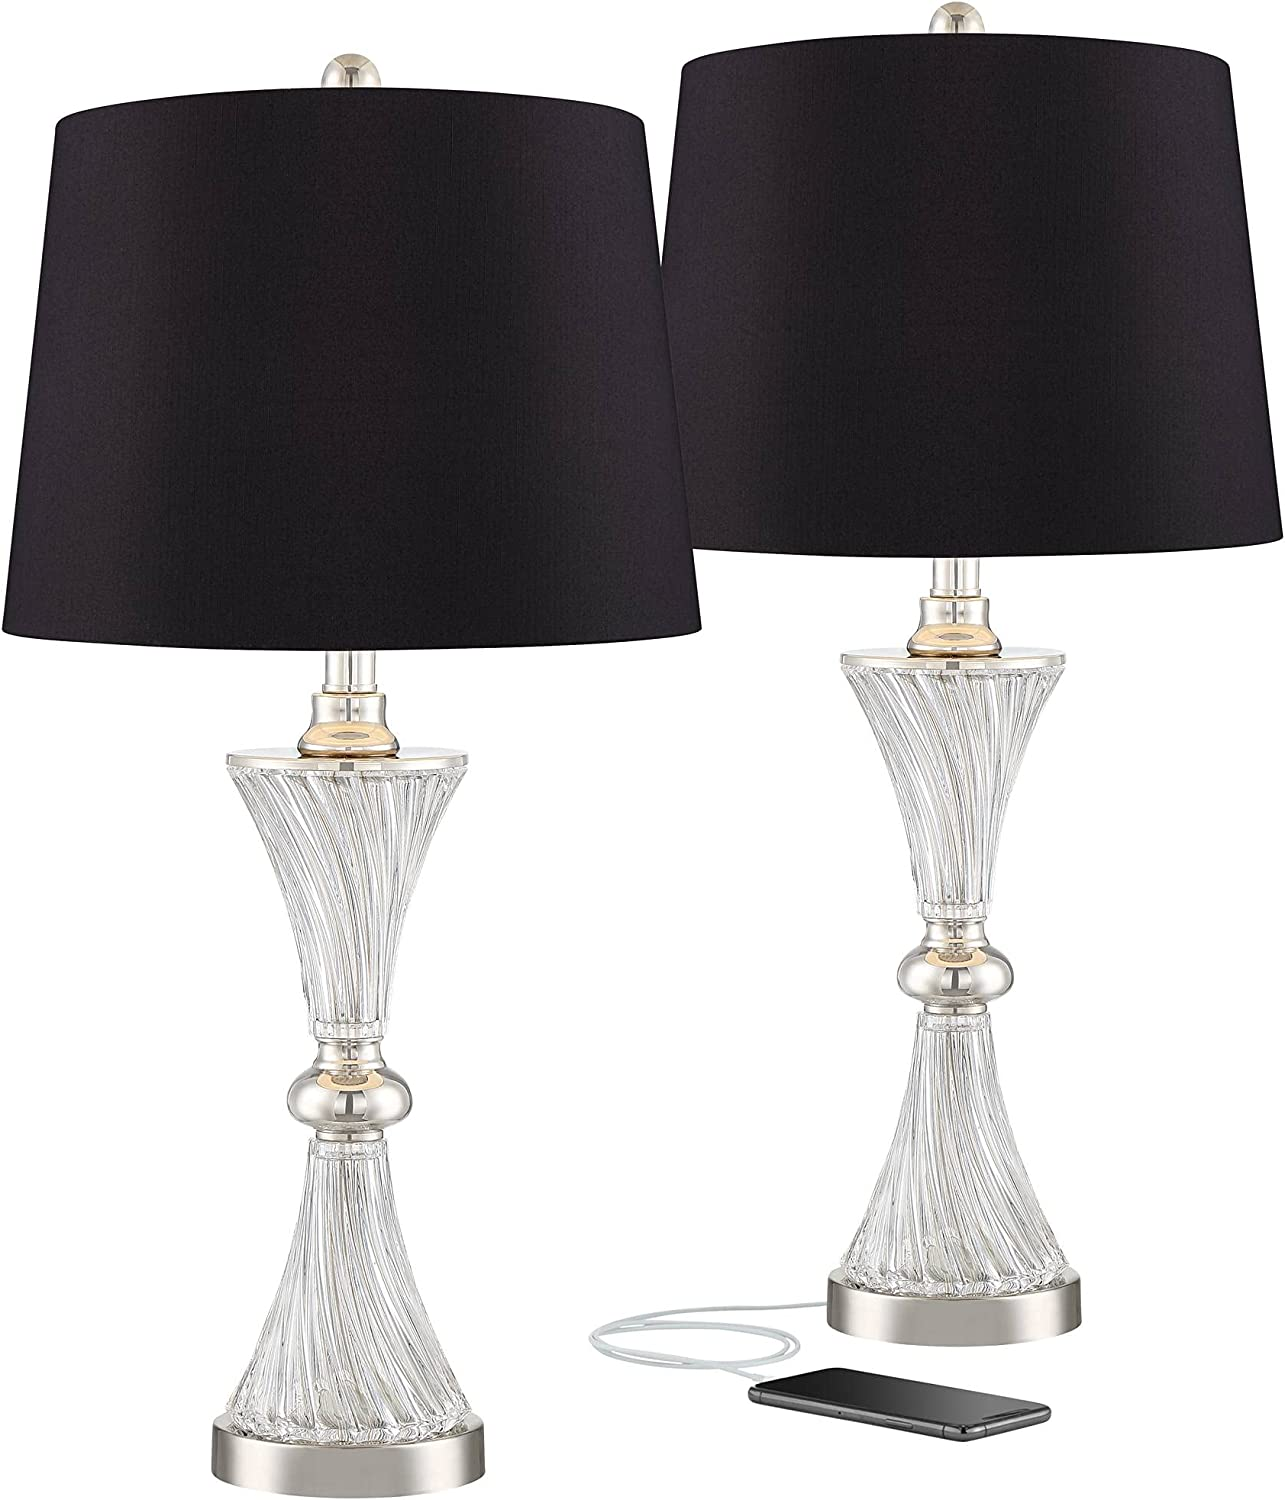 Luca Chrome Glass Black Shade Table Lamps of New arrival Set with Port USB Tulsa Mall 2